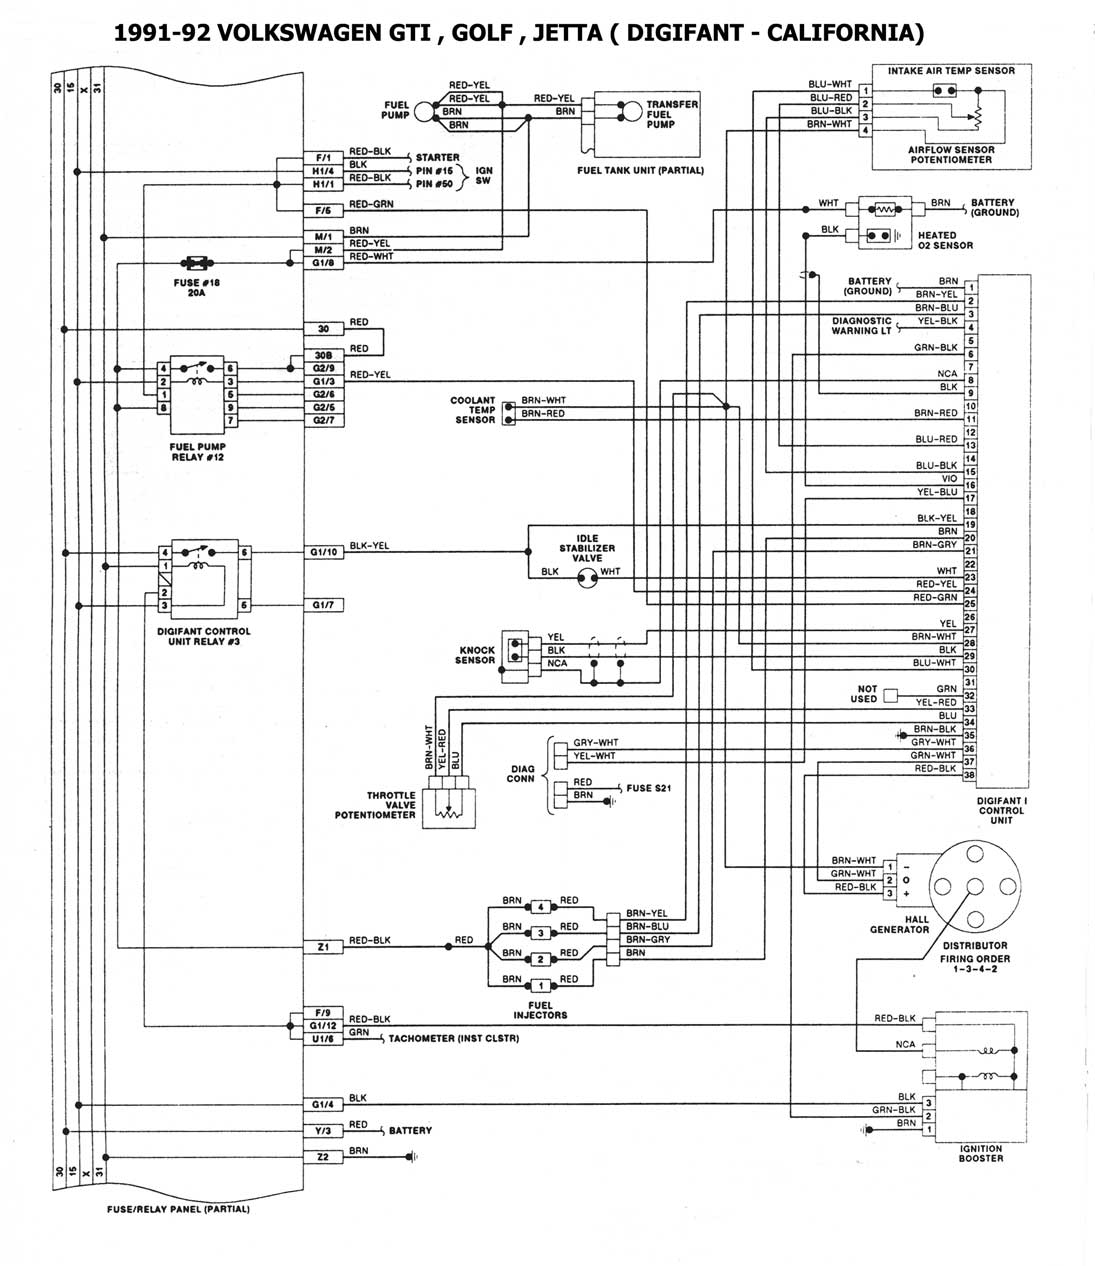 Chevrolet Malibu Wiring Diagrams